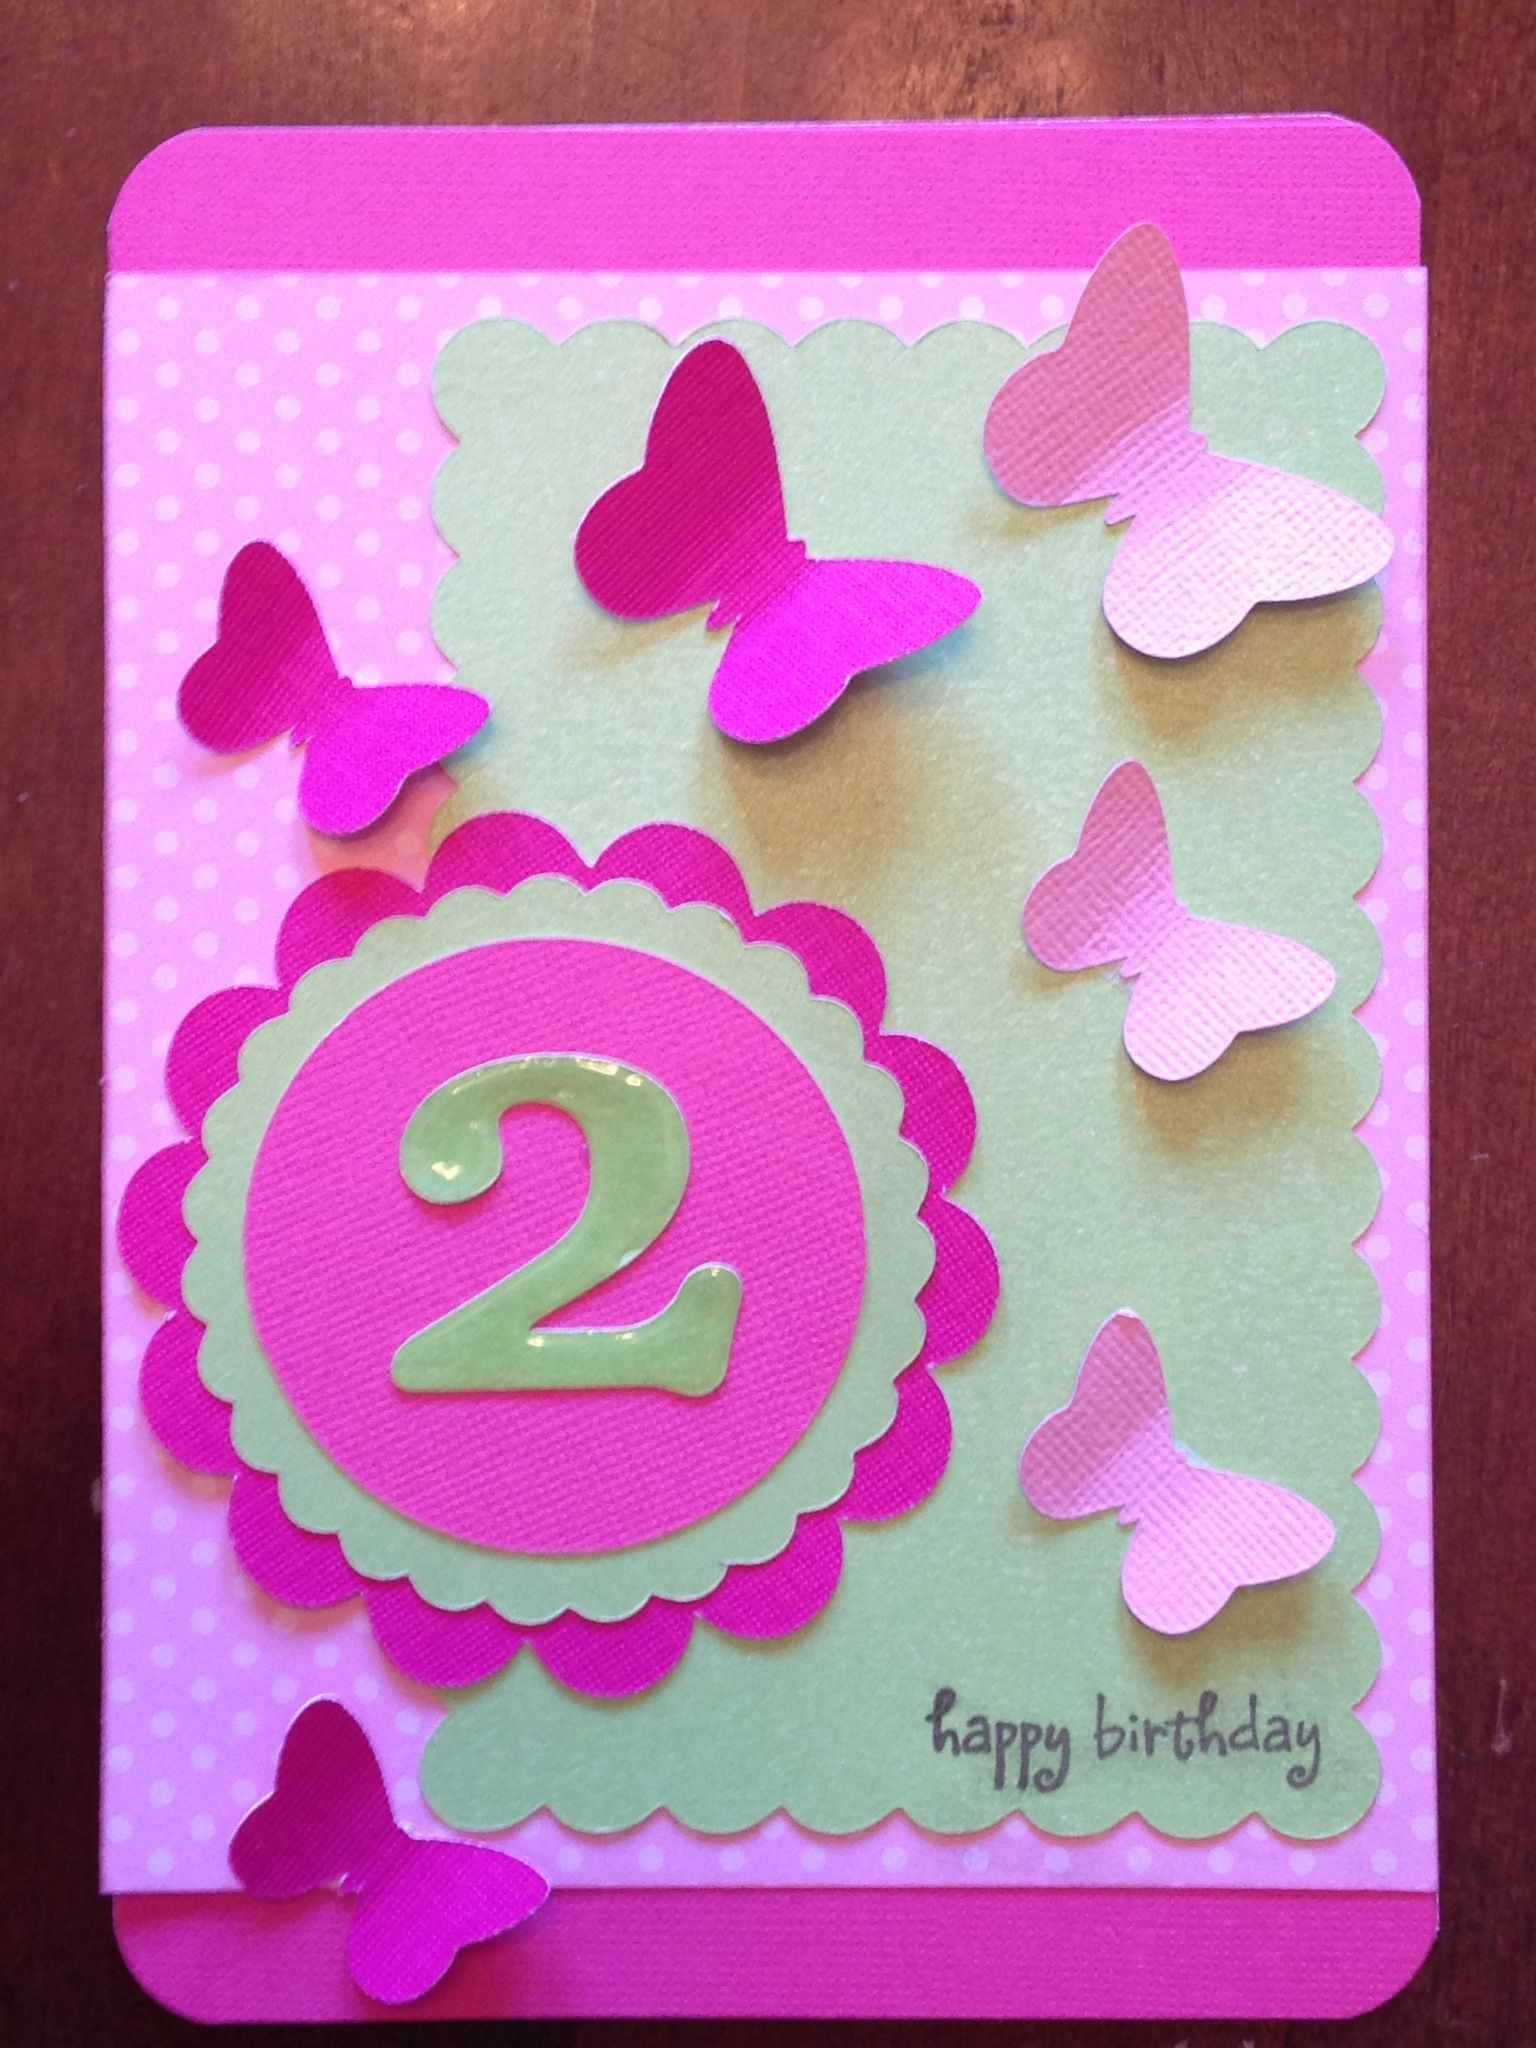 Little Girls 2nd Birthday Card I Made